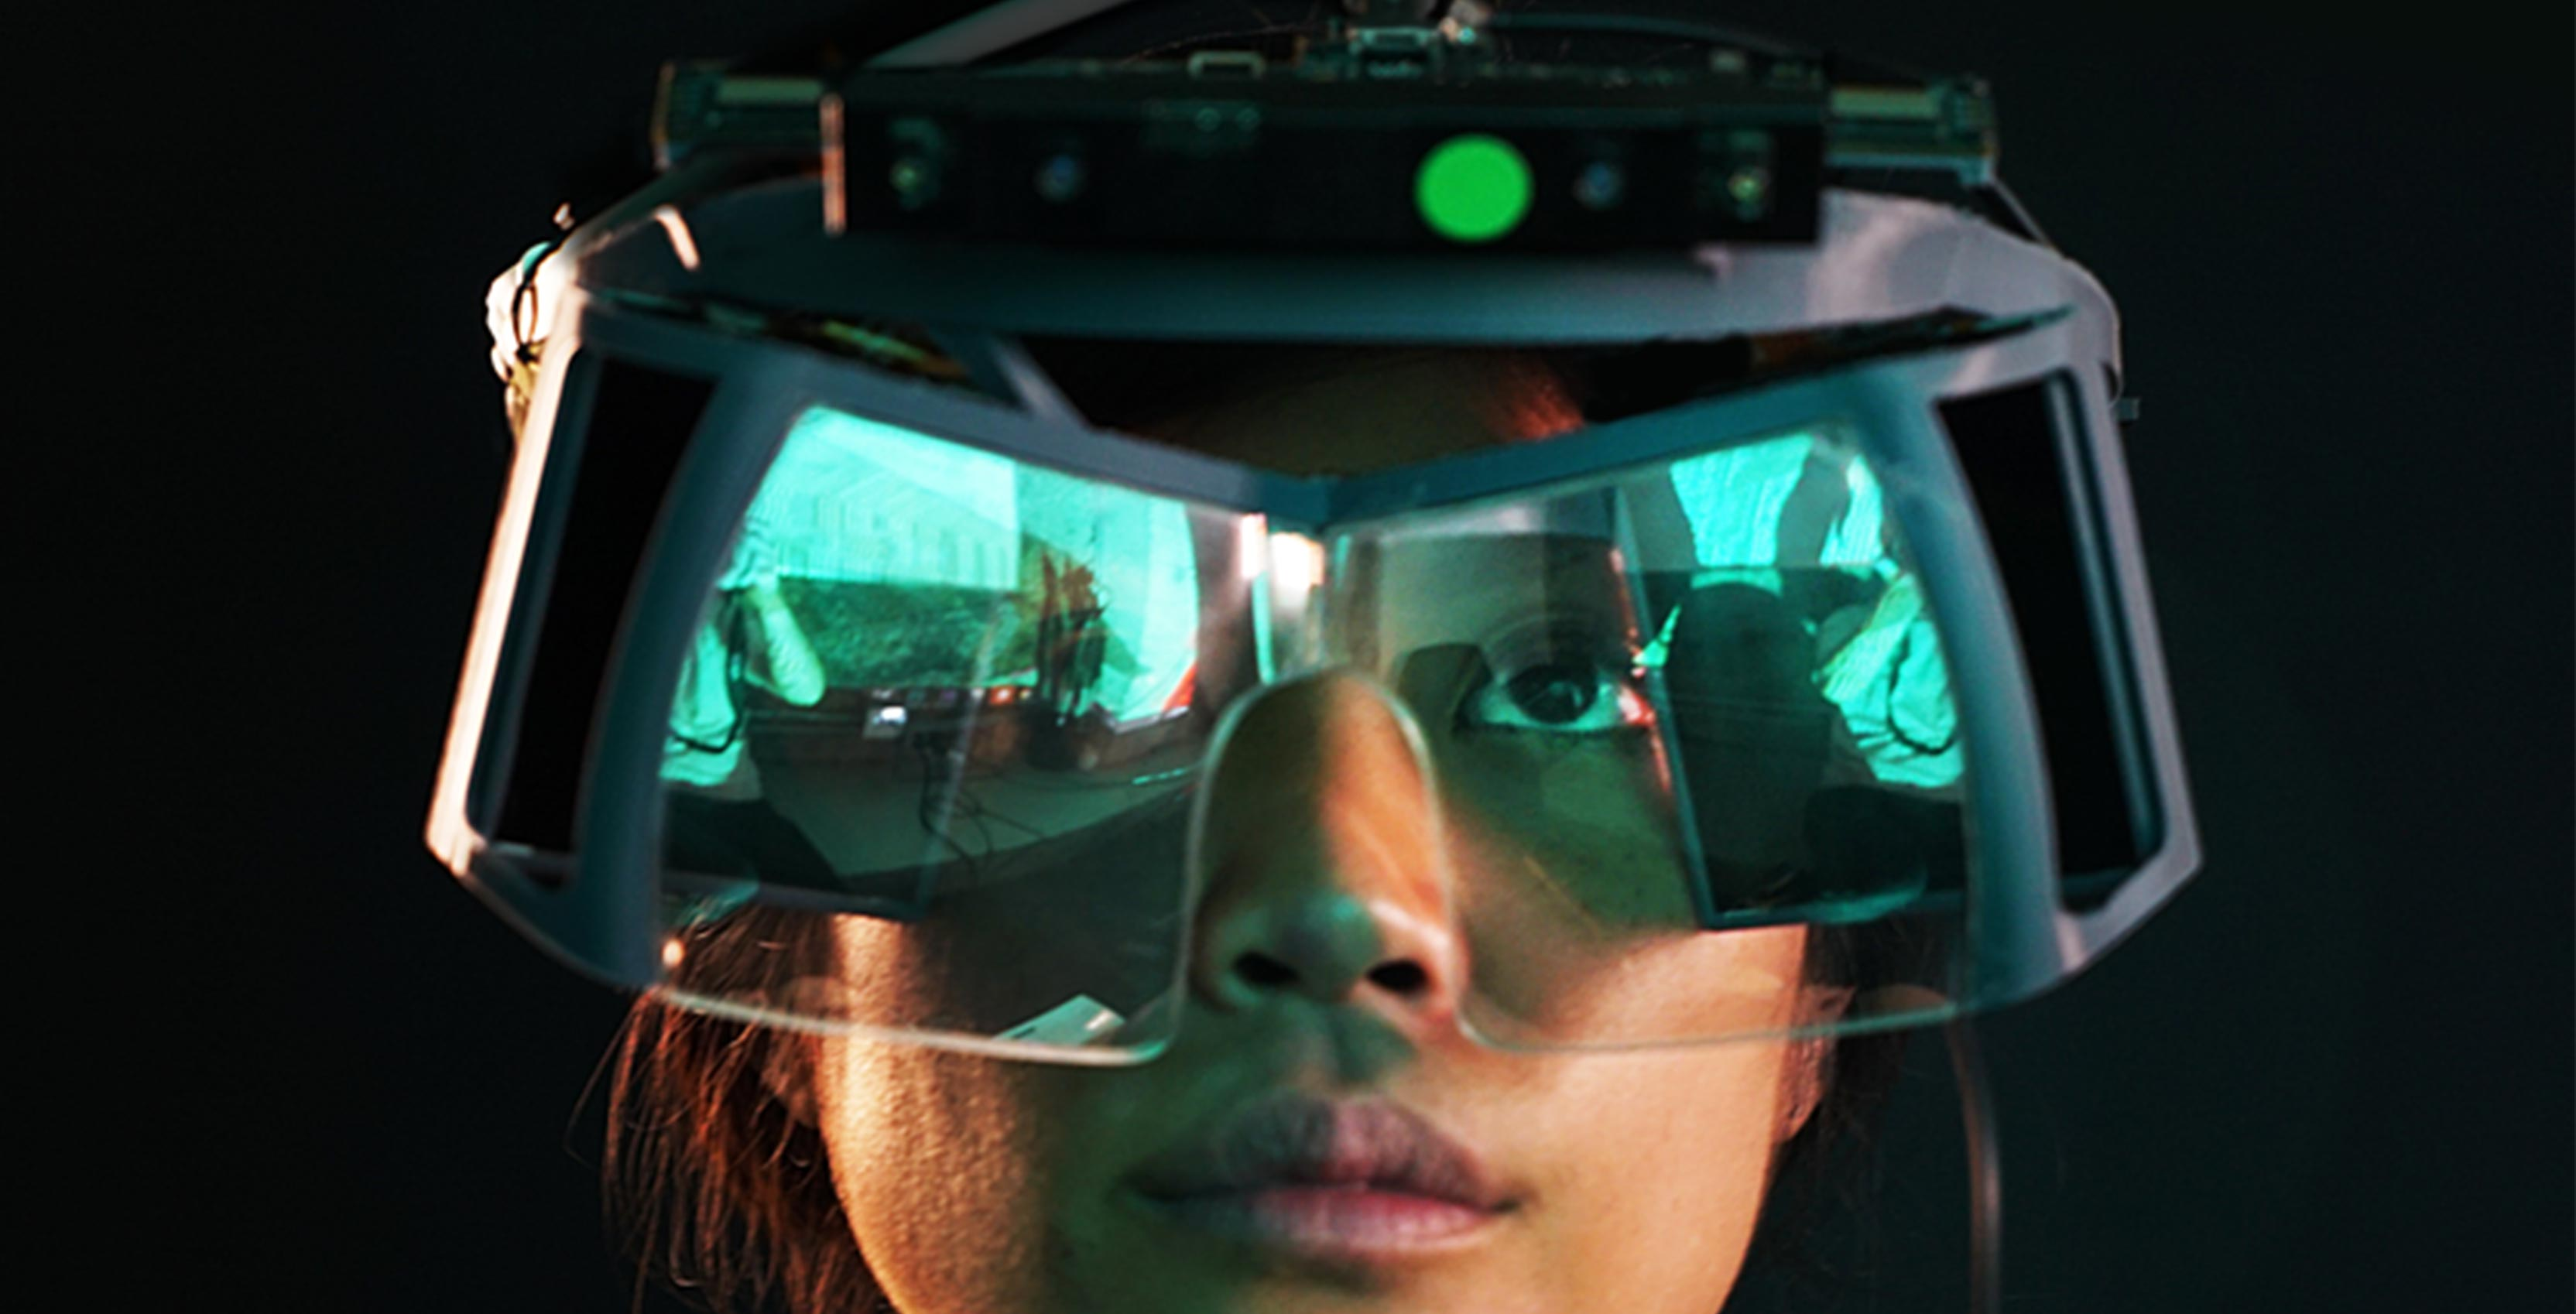 Canadian IDC projects  602 million in spending on AR and VR in 2018 535e8e71ab